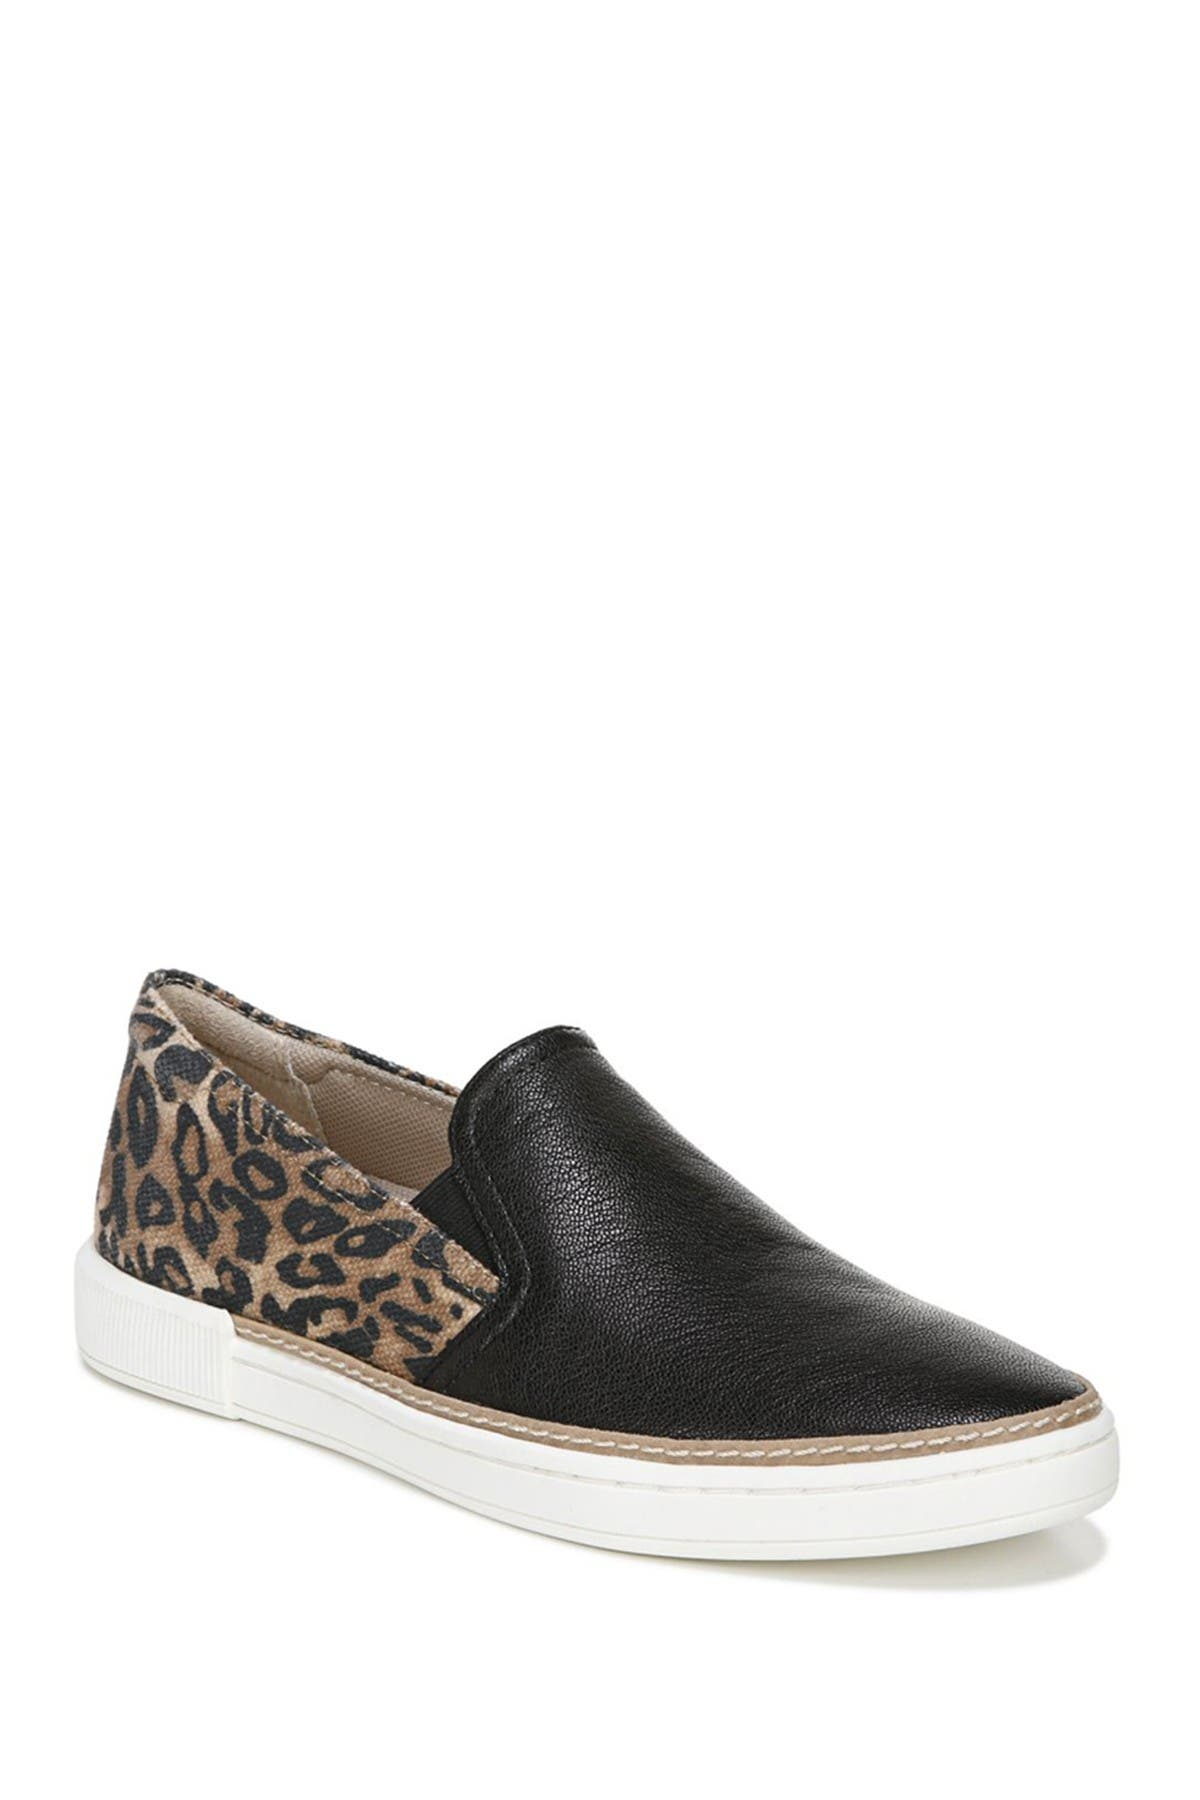 Image of Naturalizer Zola Leather Cheetah Print Leather Slip-On Sneaker